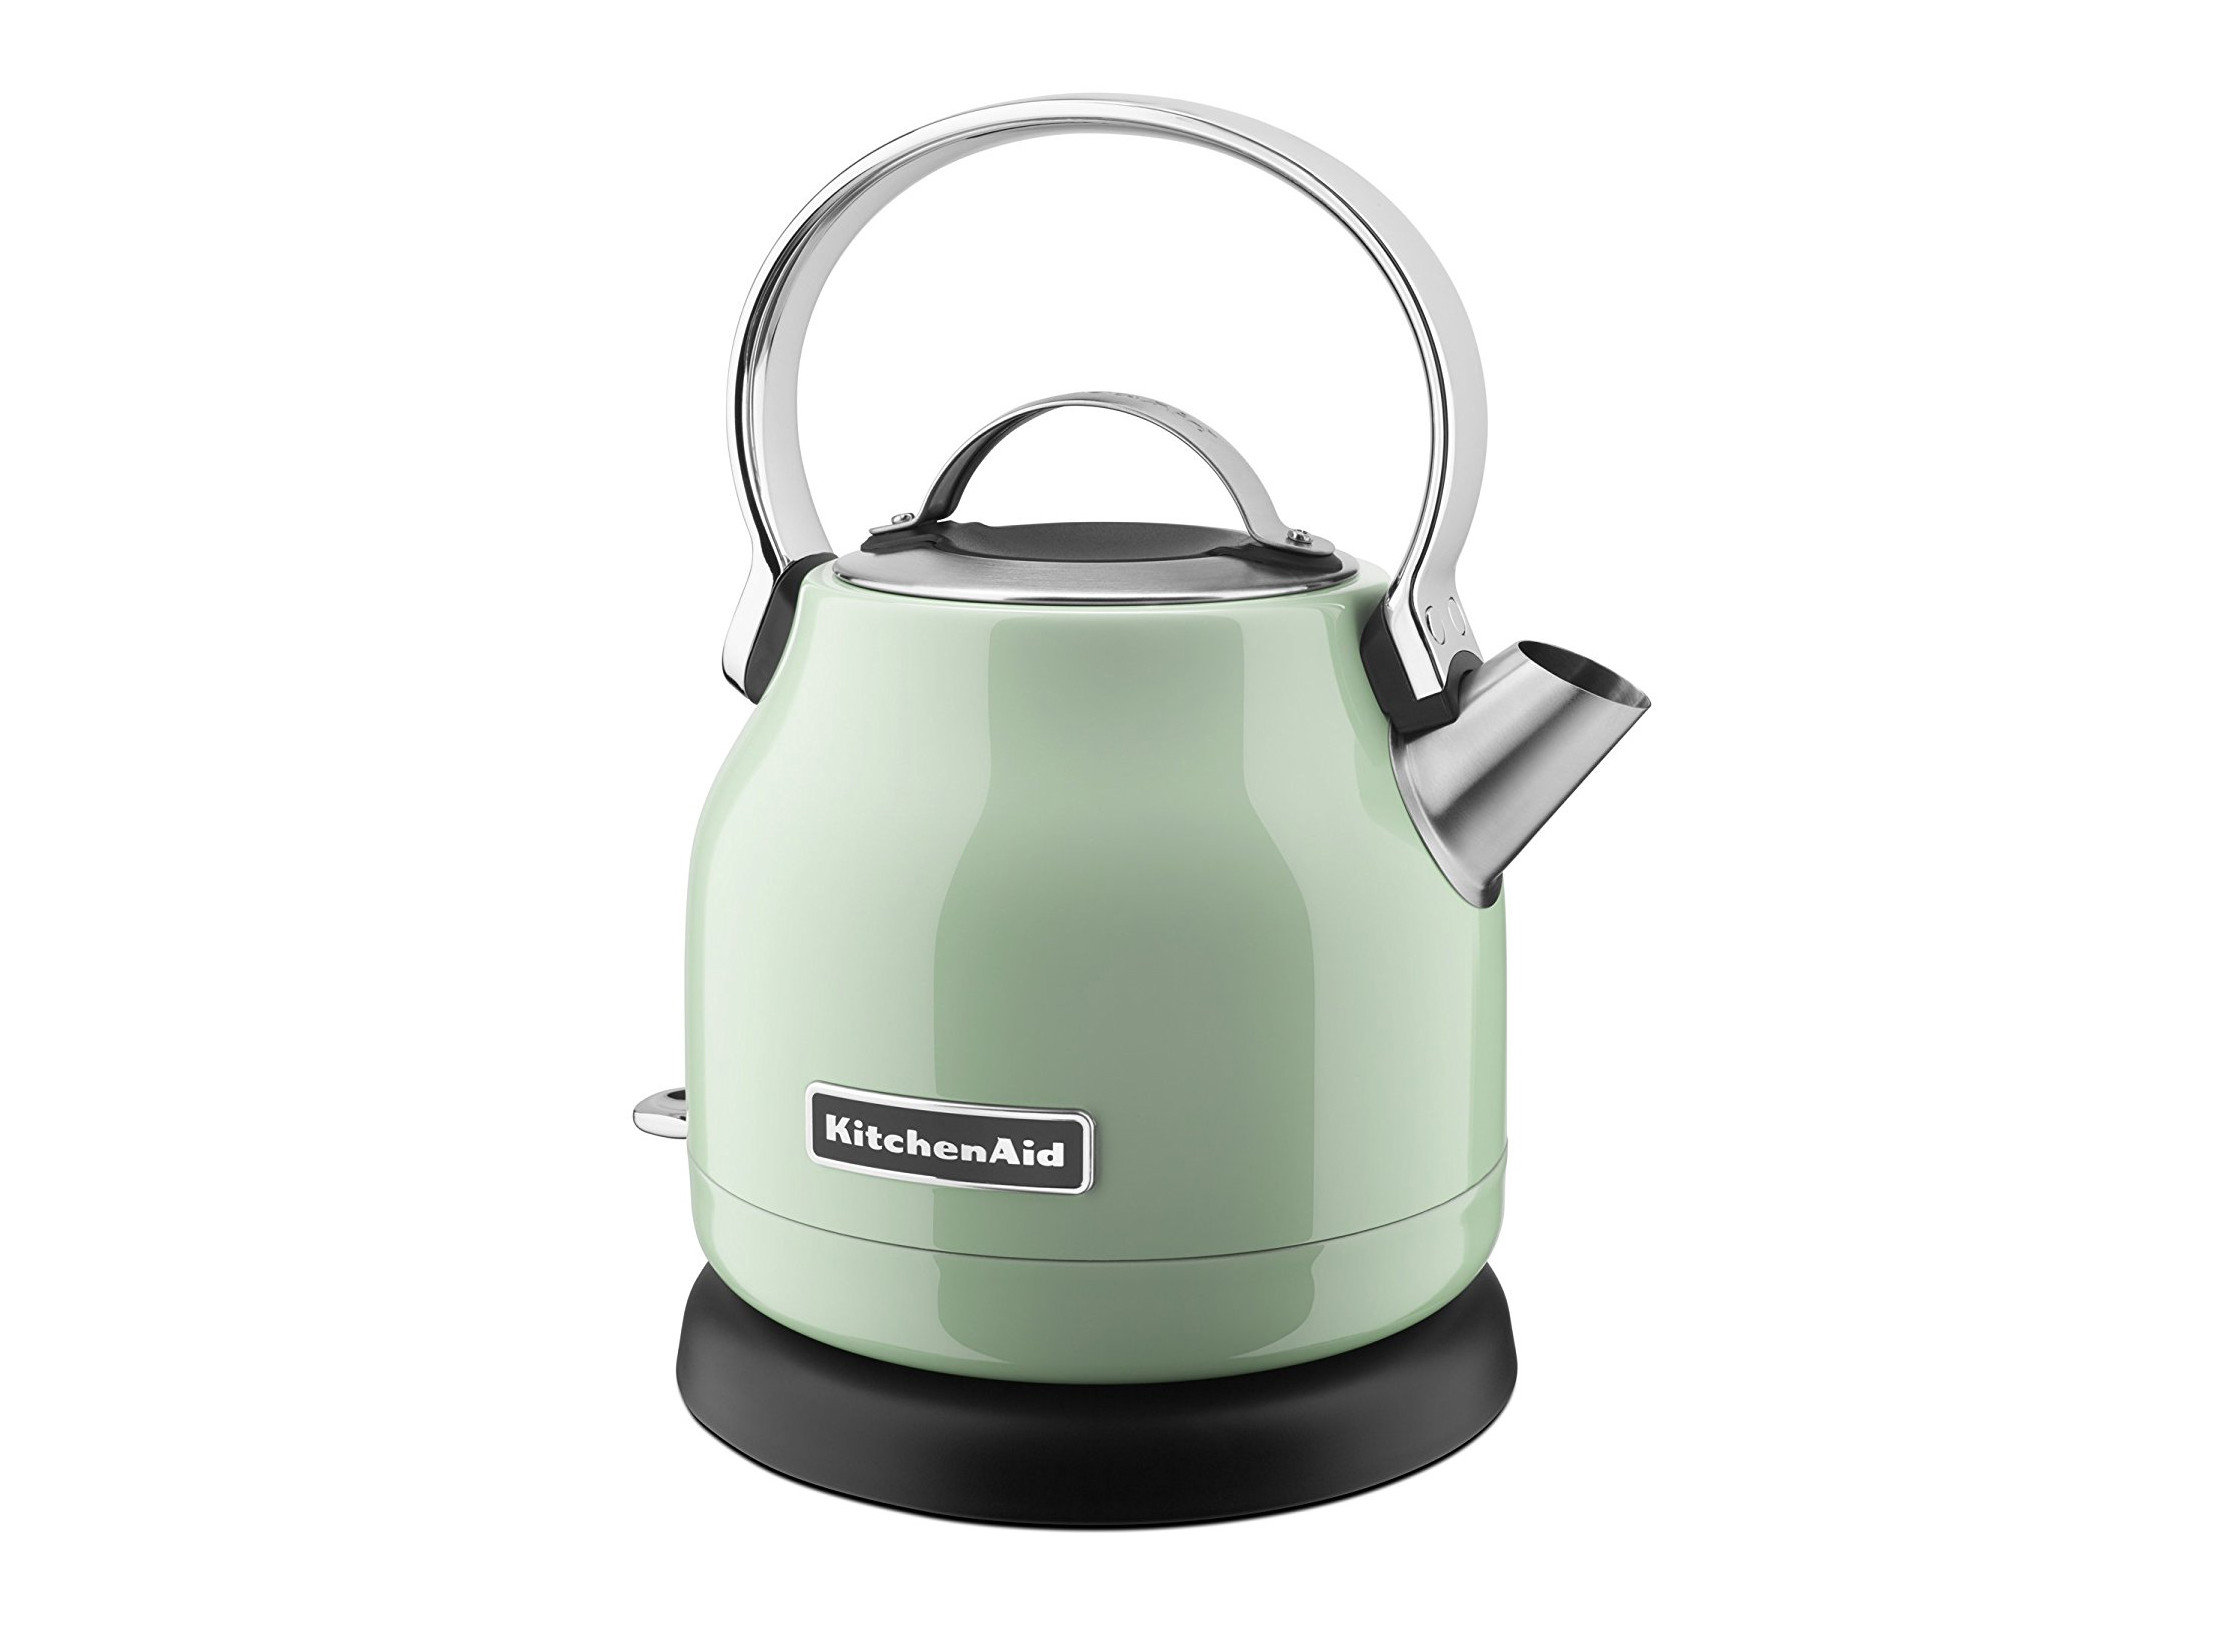 Travel Shop kettle small appliance kitchenware product pot stovetop kettle product design electric kettle home appliance teapot